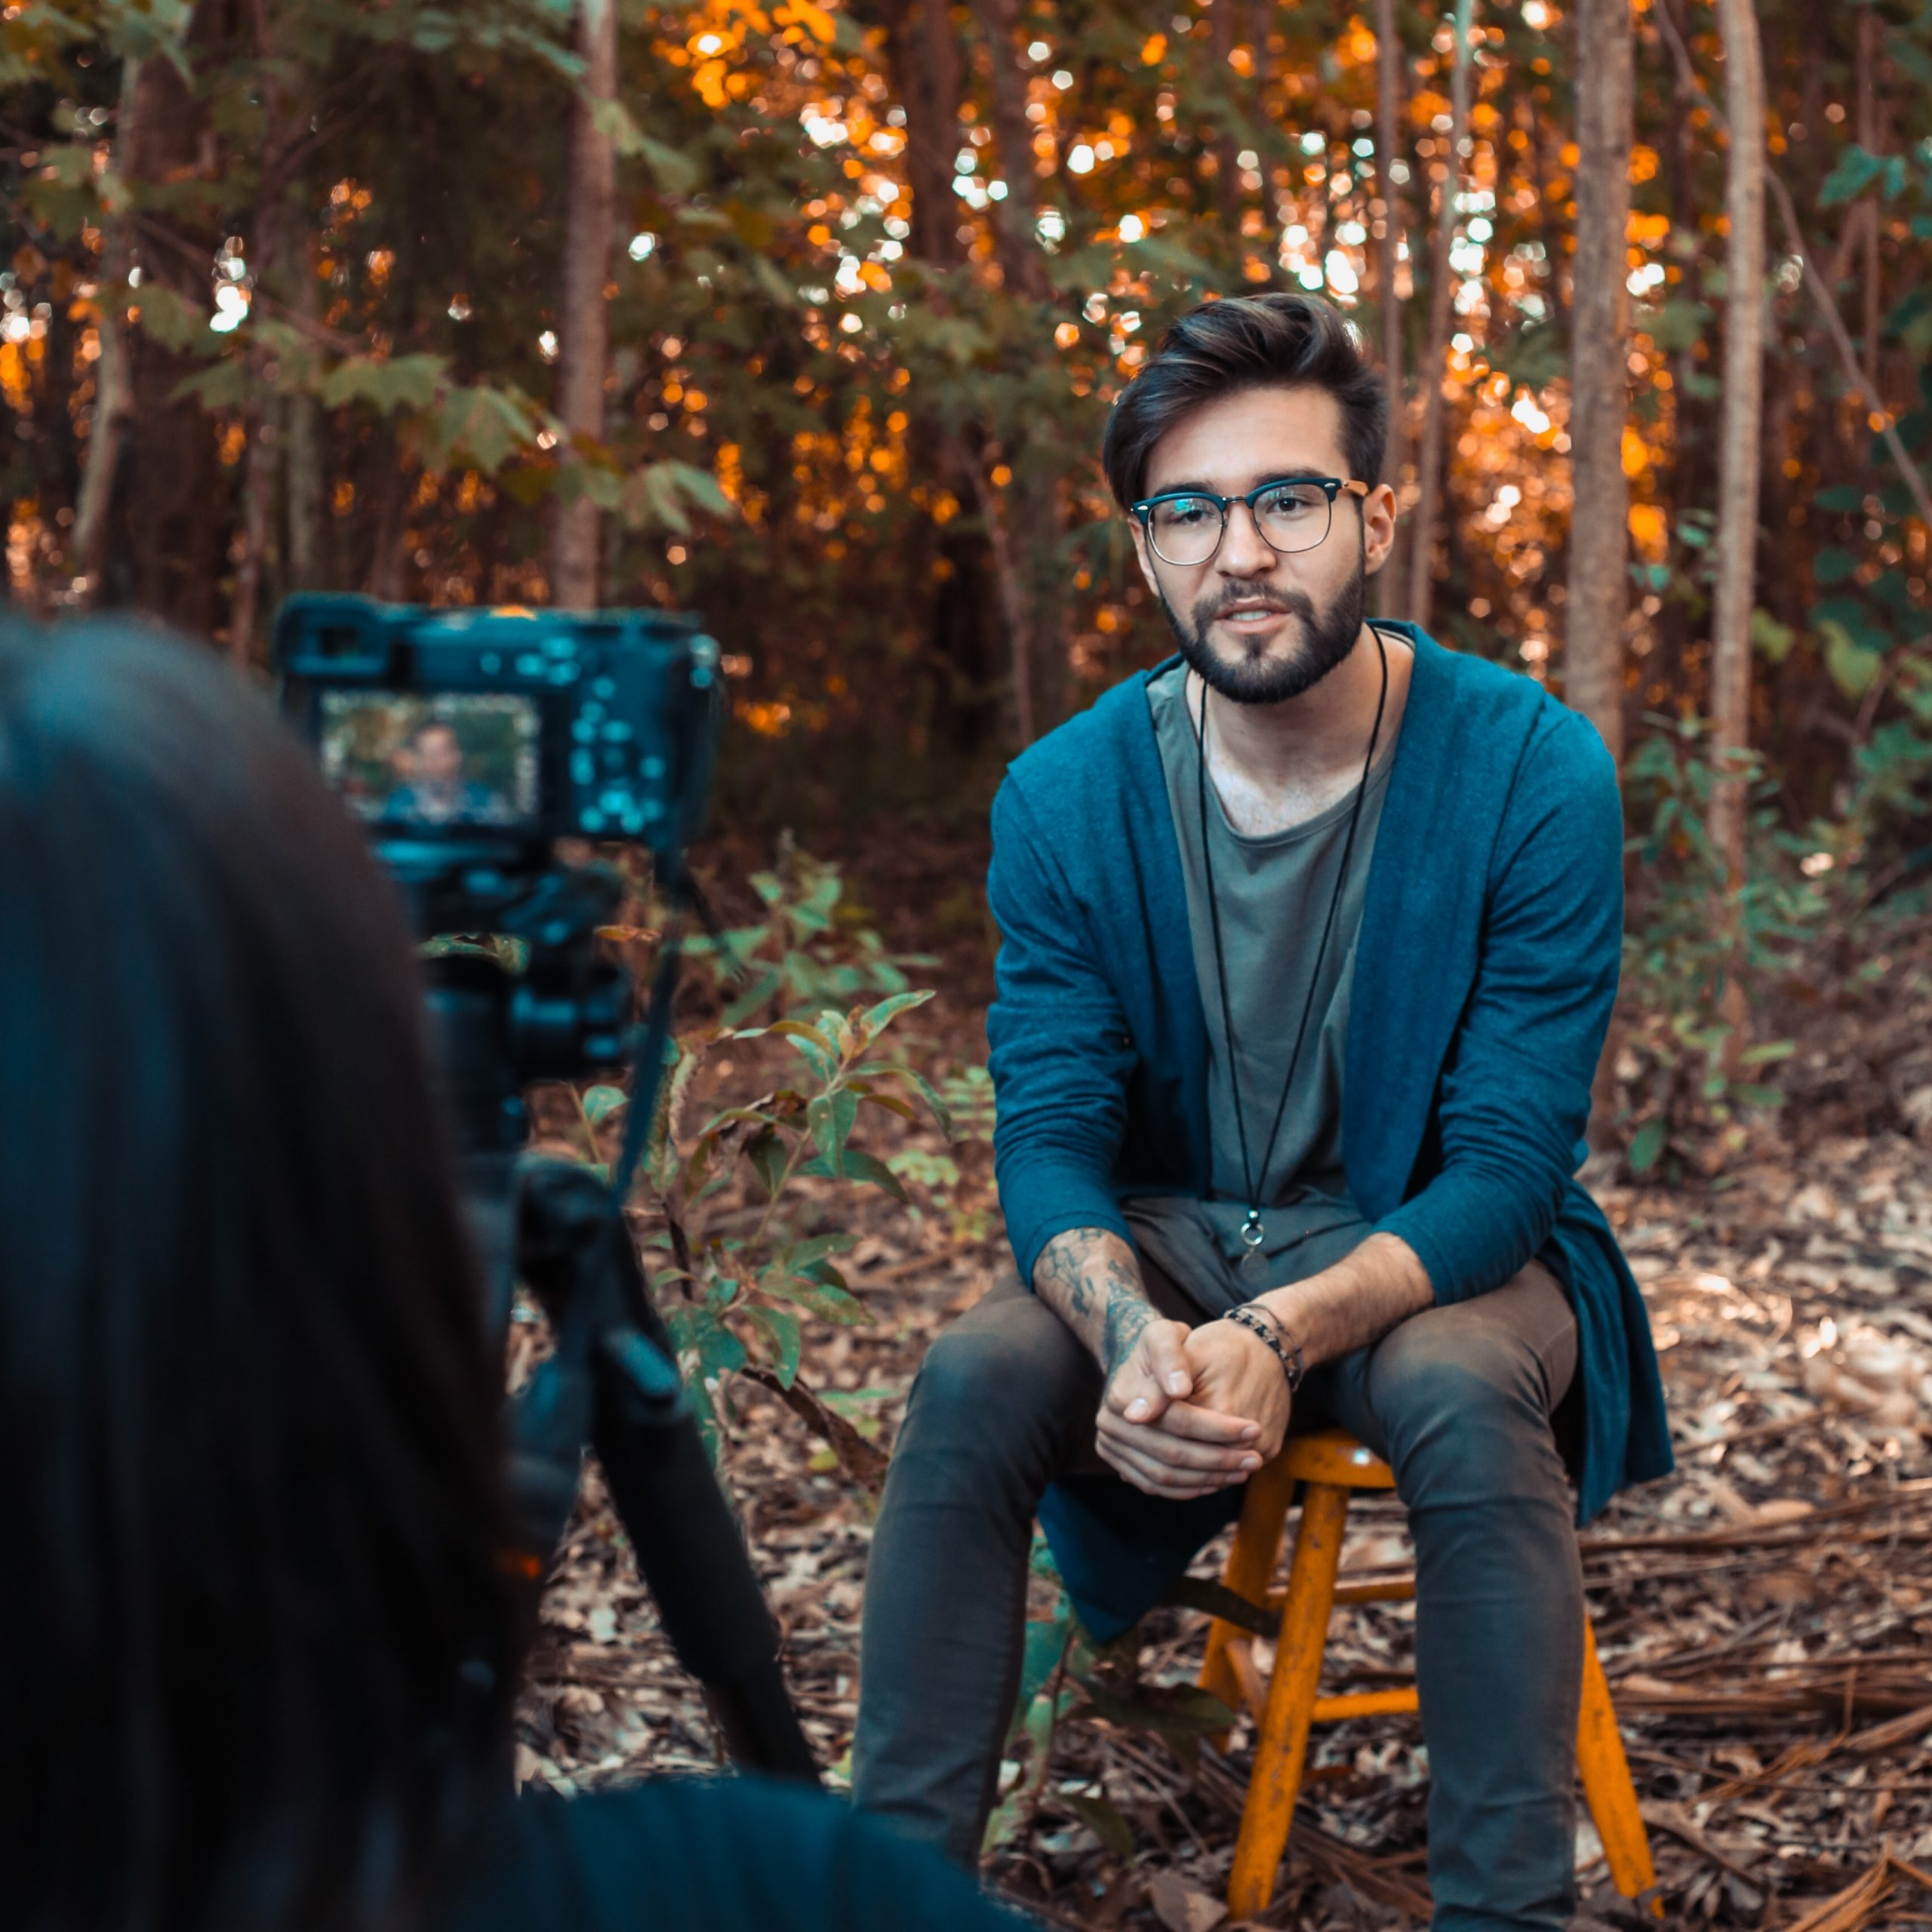 Professional video producer filming an interview in woodland.